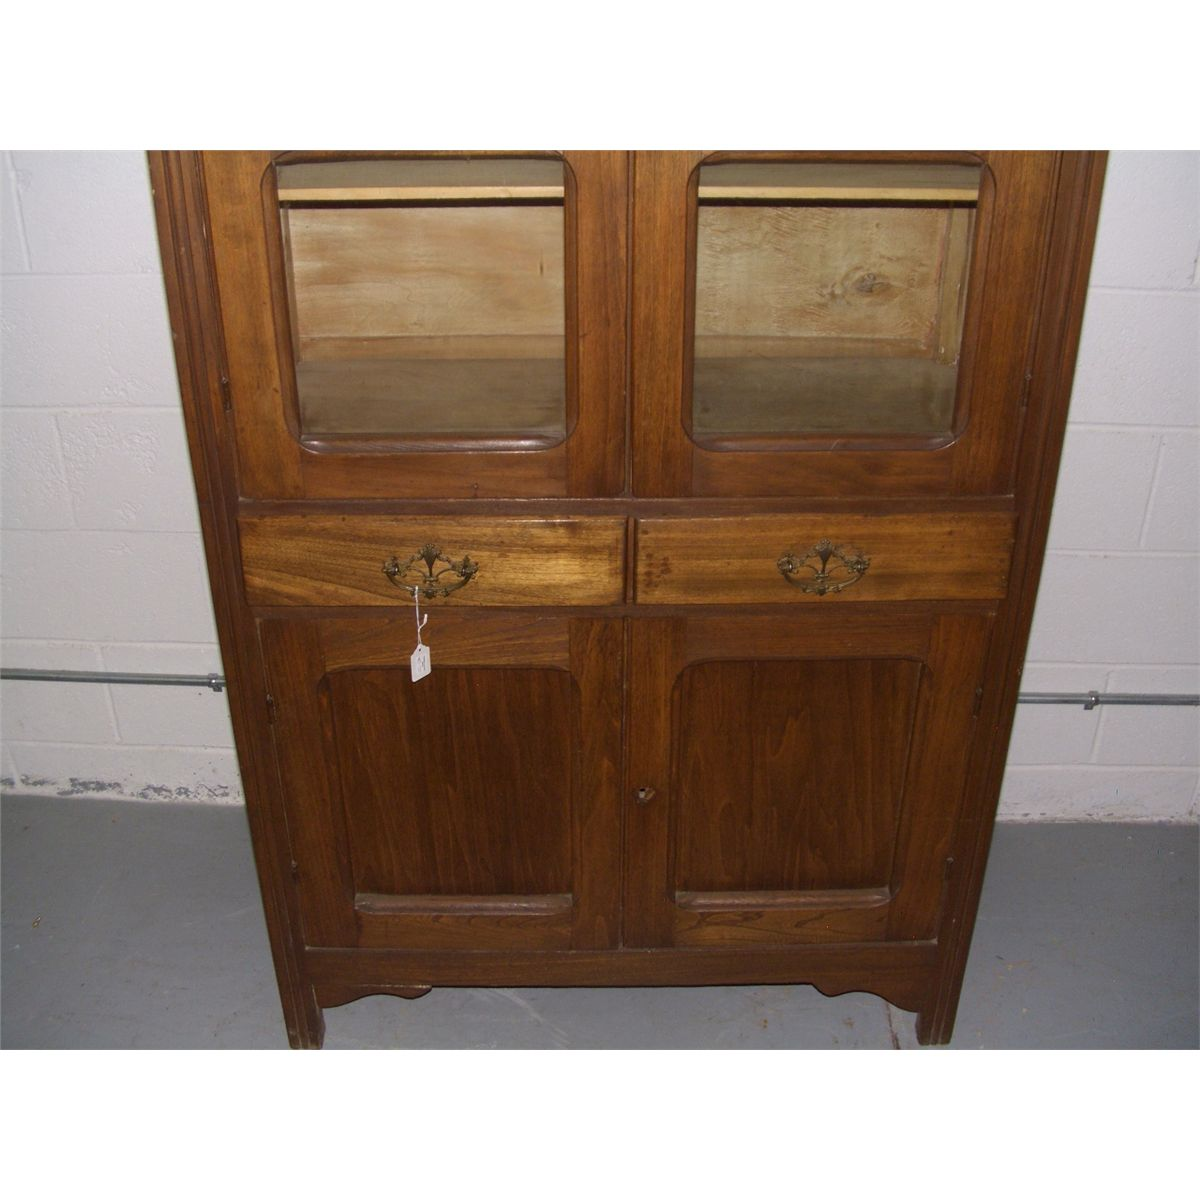 old oak kitchen cabinets antique oak kitchen cabinet with applied carving ssr 24013